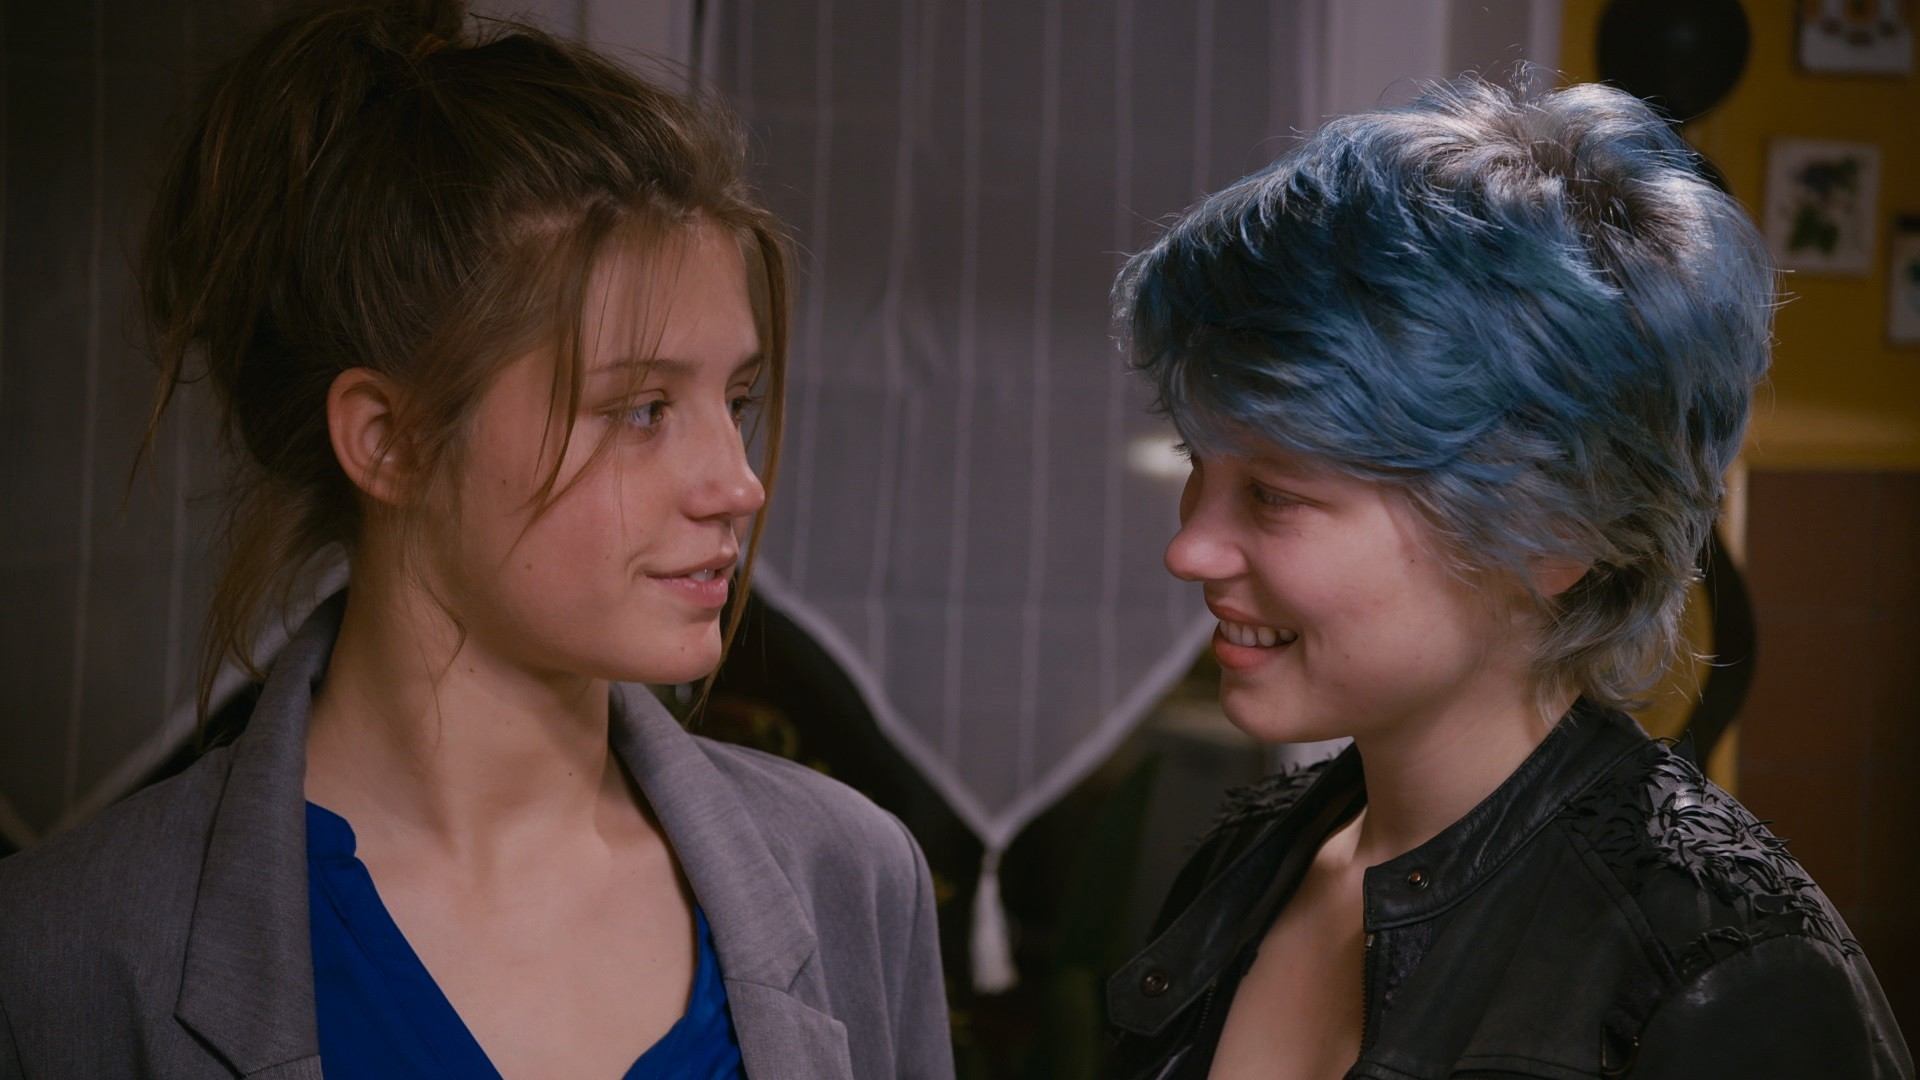 New York Film Festival 2013: Blue Is the Warmest Color Review